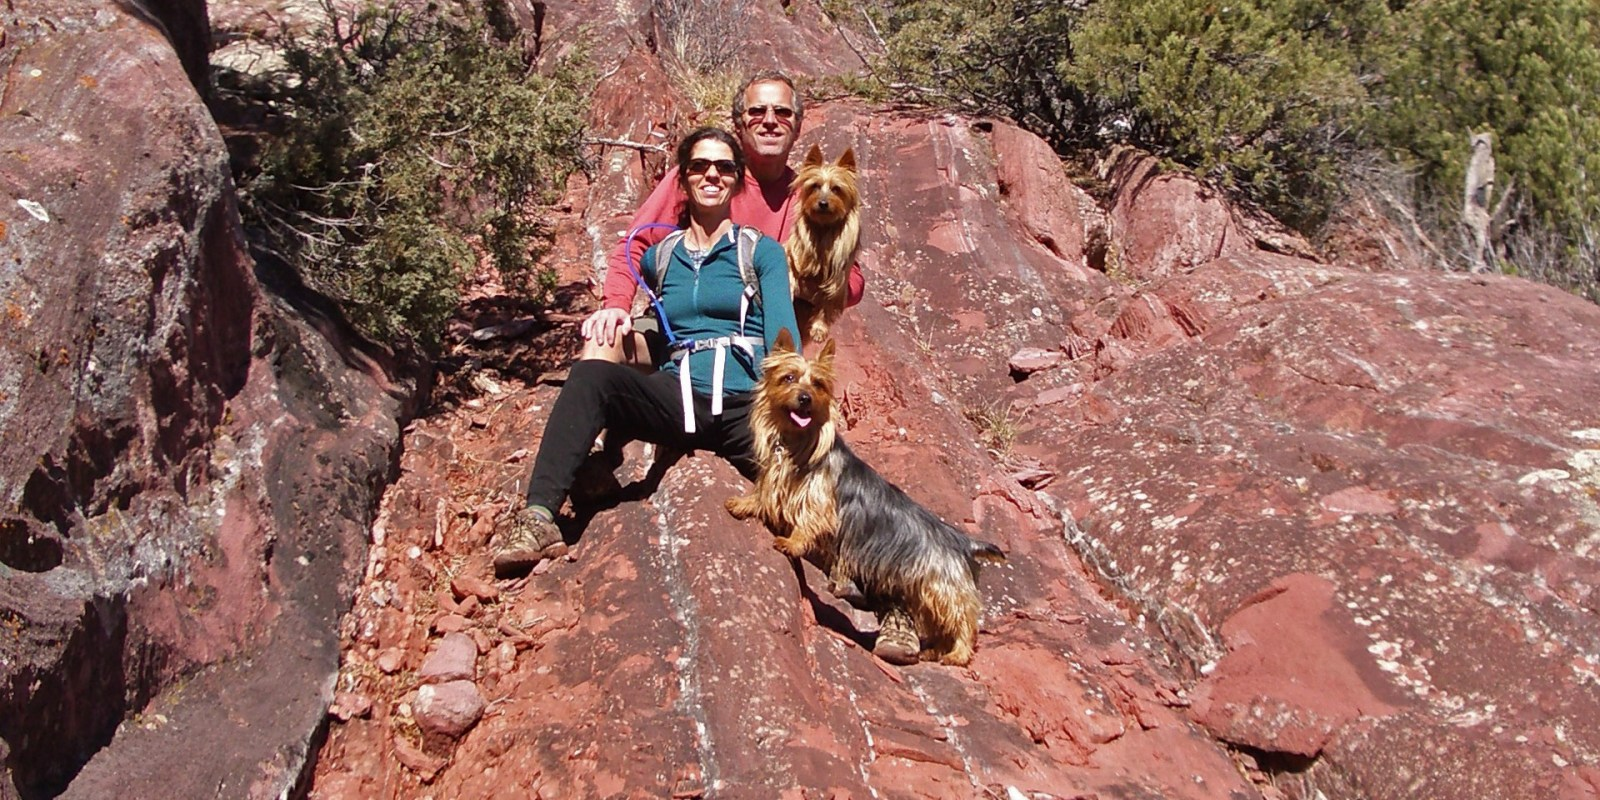 hikers pose with two dogs on a rocky trail